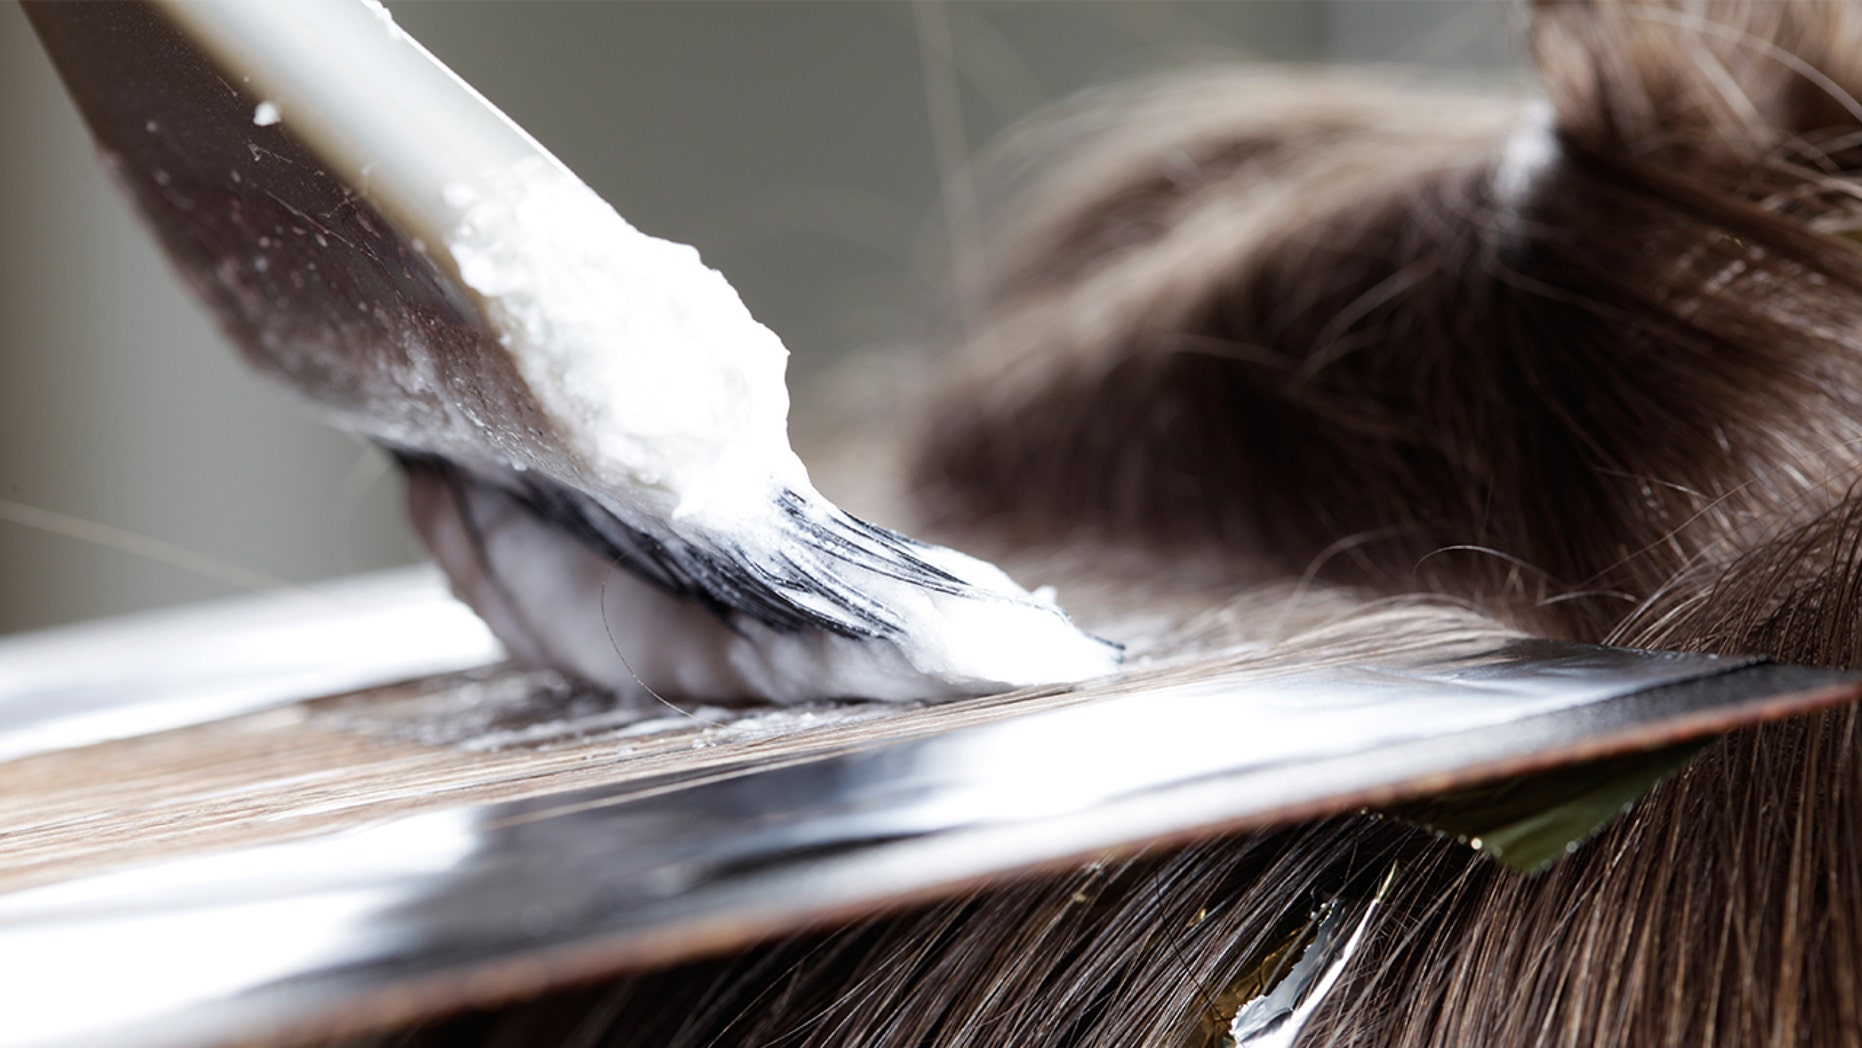 A new study shows certain hair dyes might increase the risk of breast cancer